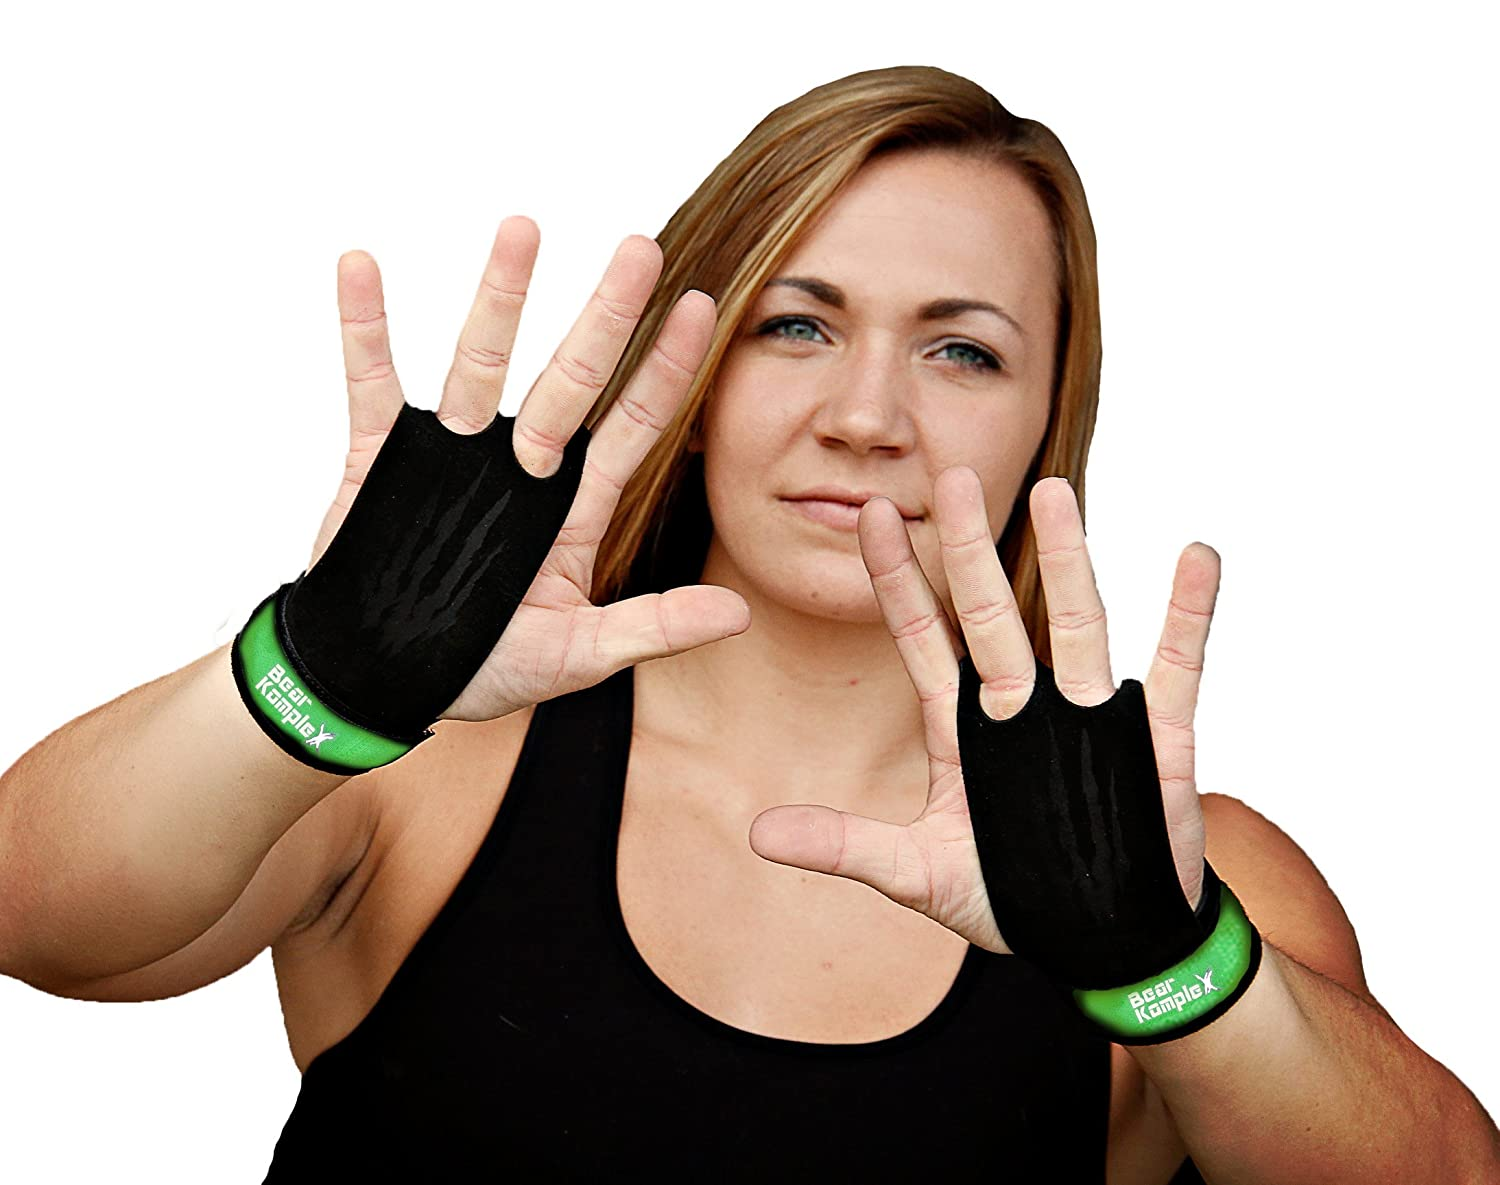 Bear KompleX 2 hole Gymnastics grips are great for WODs, pullups, weight lifting, chin ups, cross training, exercise, kettlebells, and more. Protect your palms from rips and tears! LRG 2hole YLW